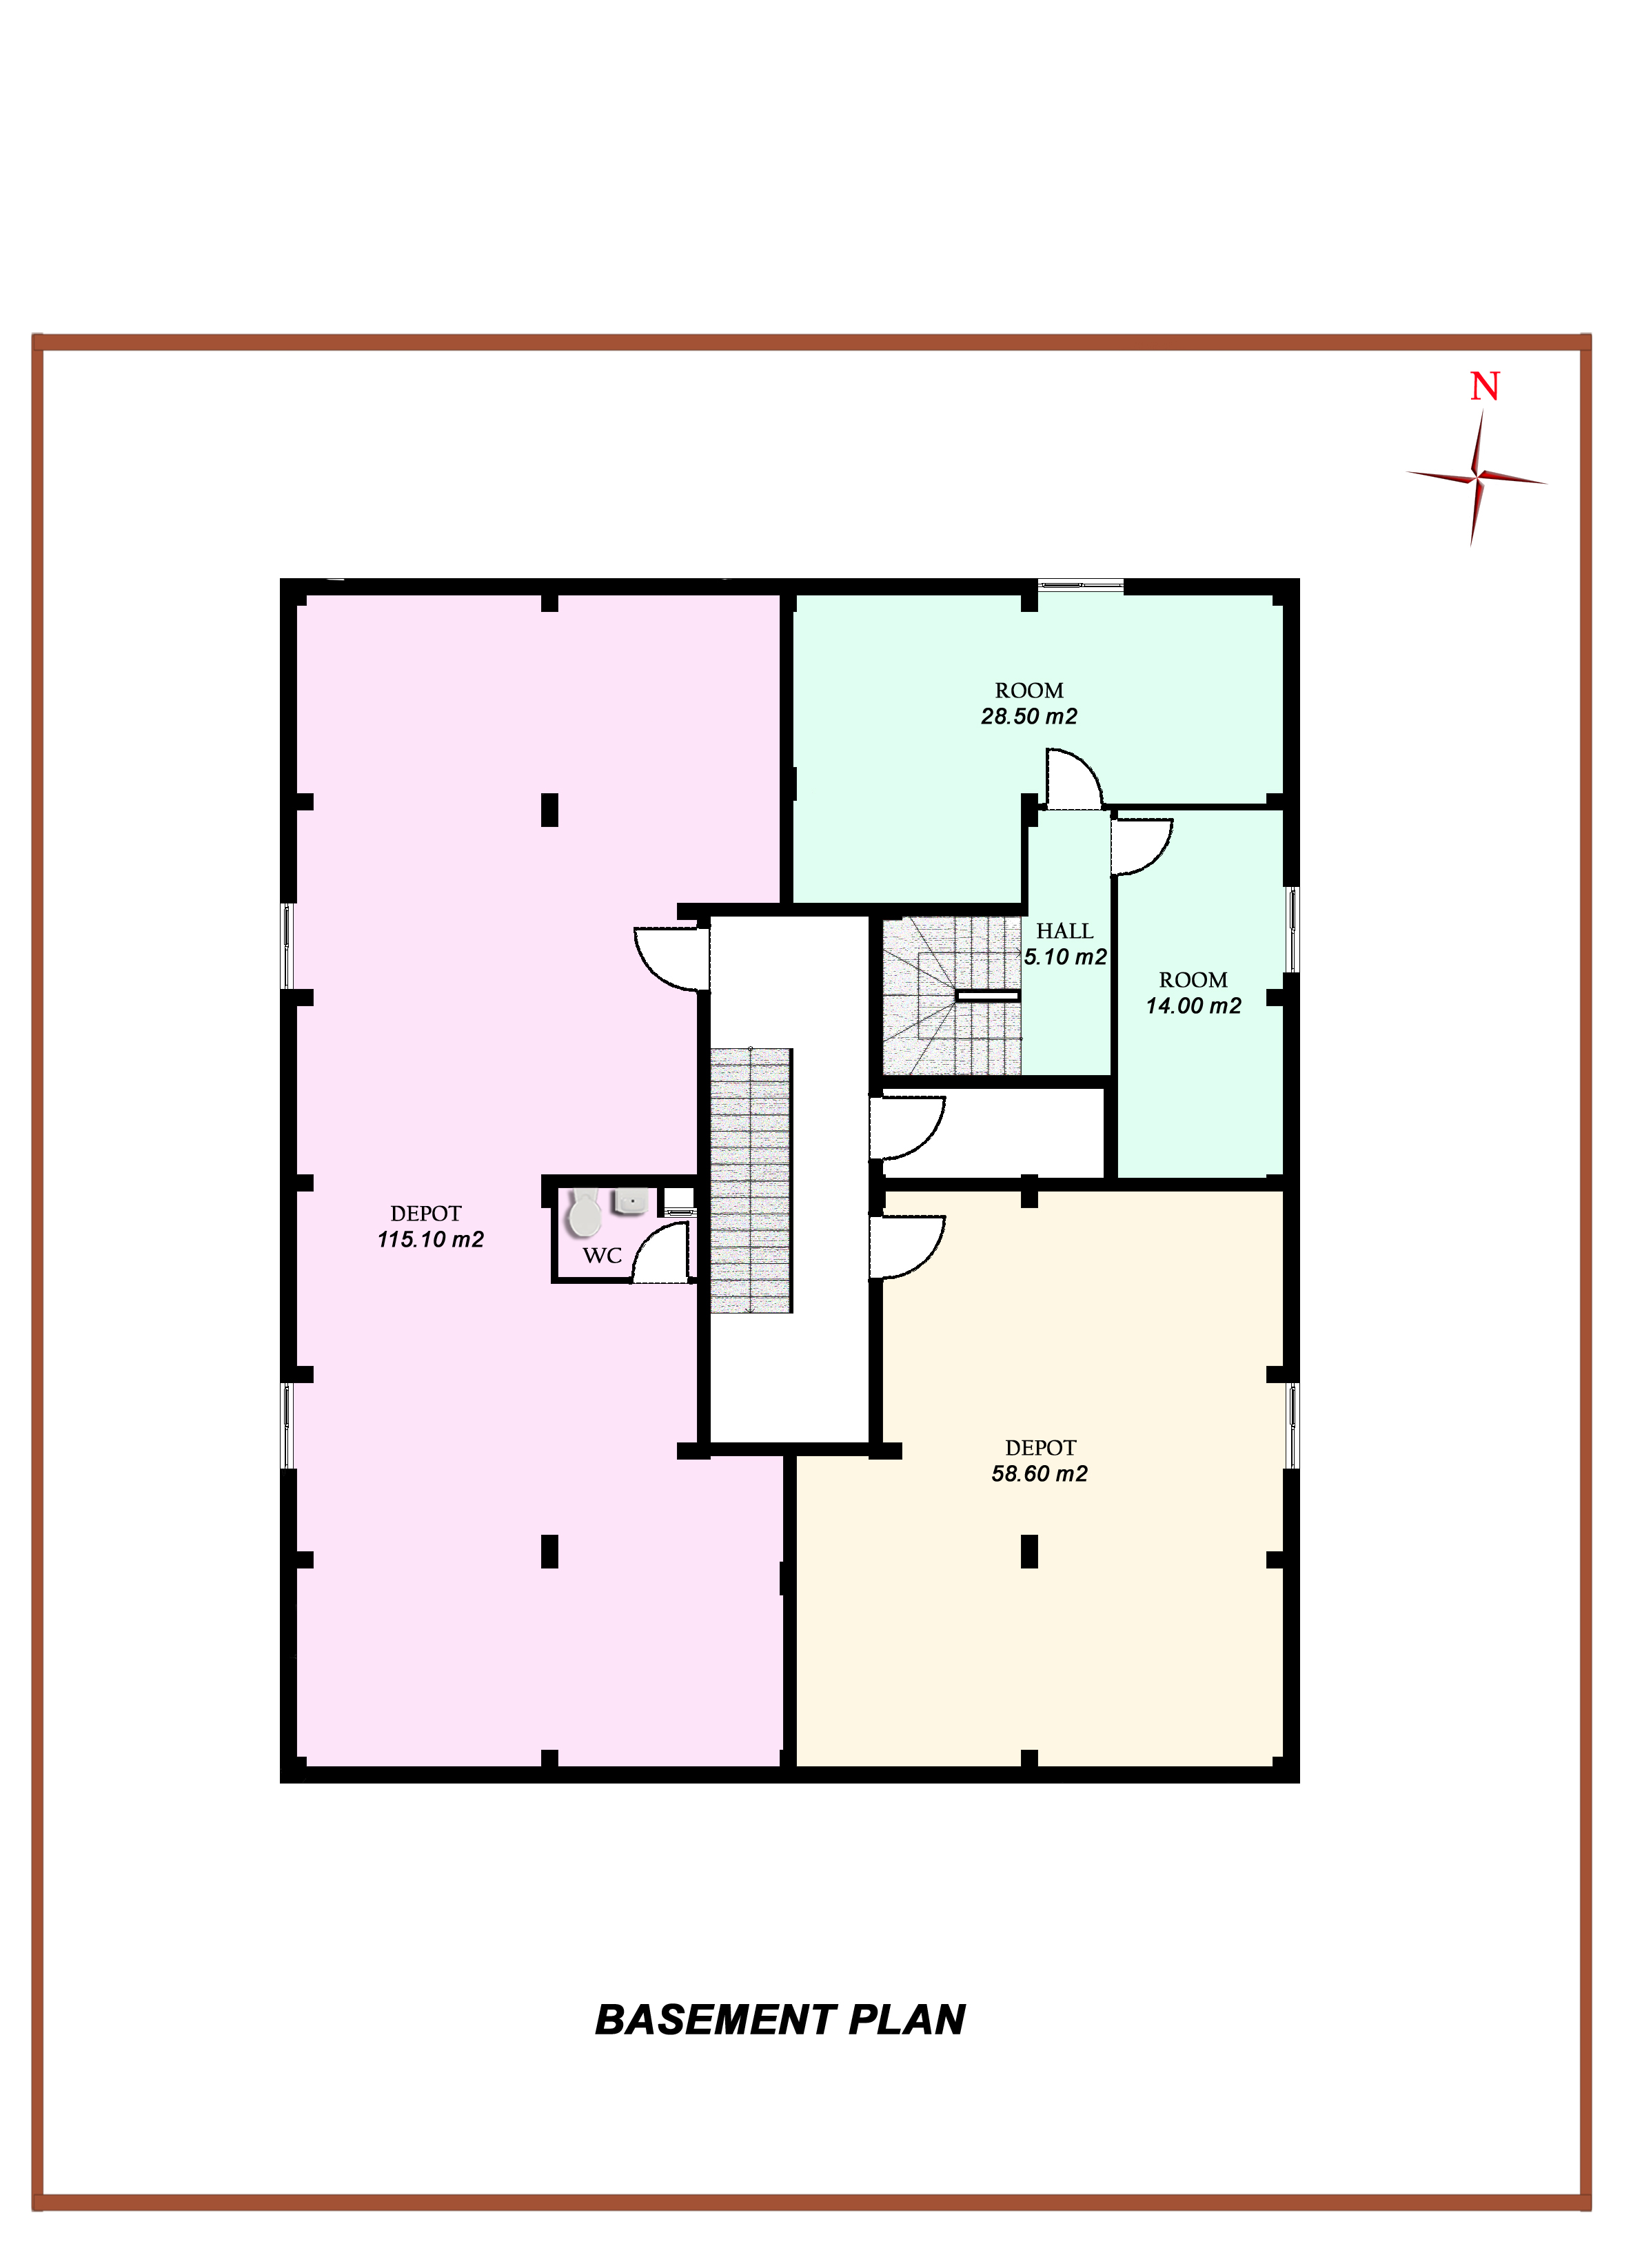 House plans with stairs in middle of room for Basement floor plans with stairs in middle